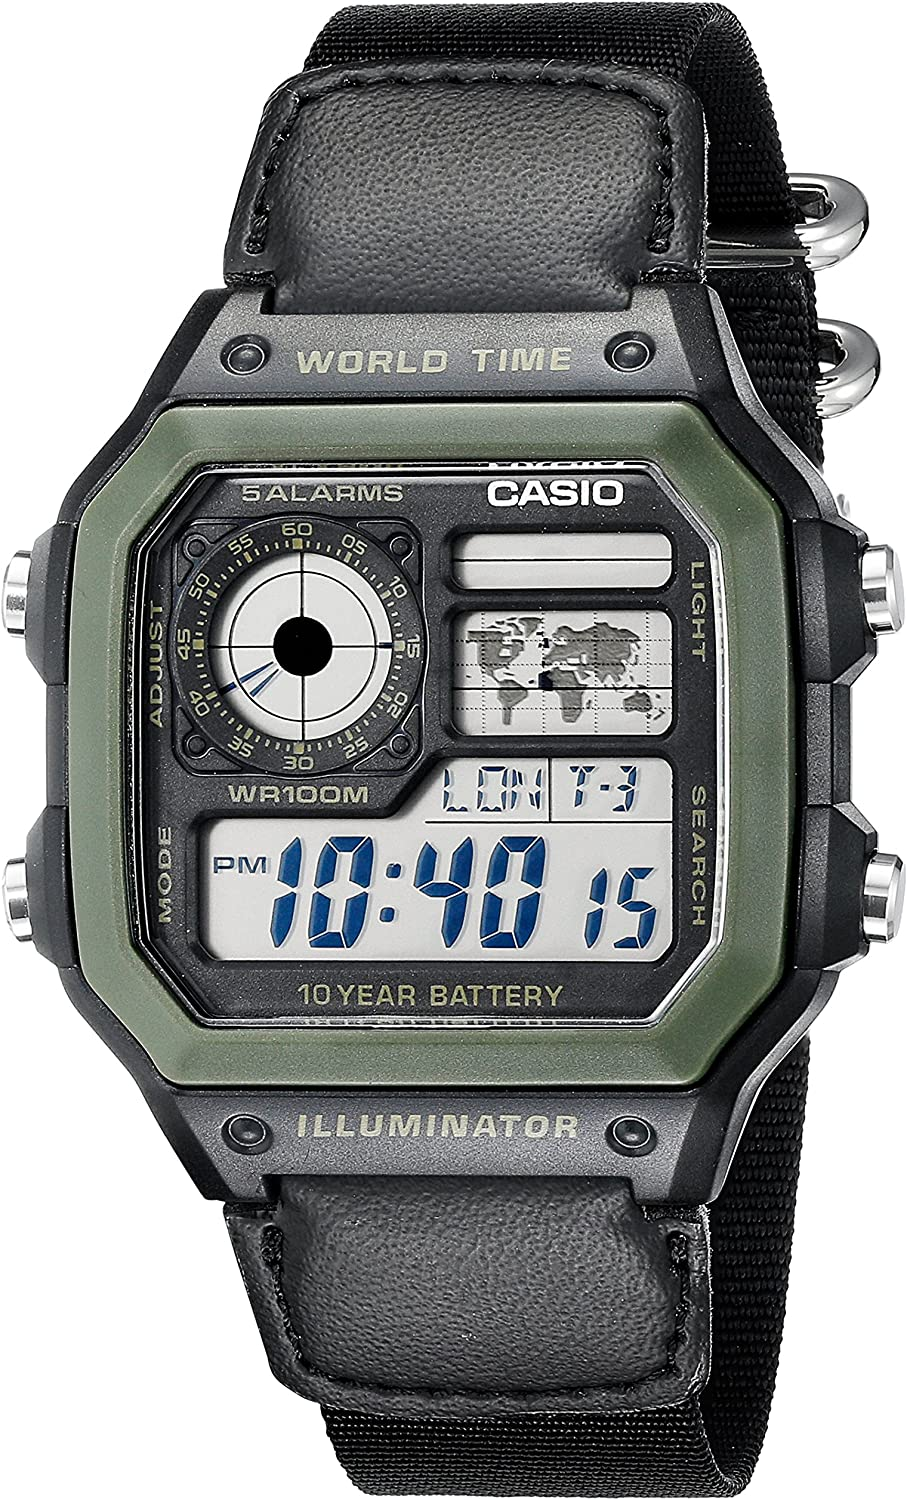 Casio Men's AE1200WHB-1BV Black Resin Watch with Ten-Year Battery